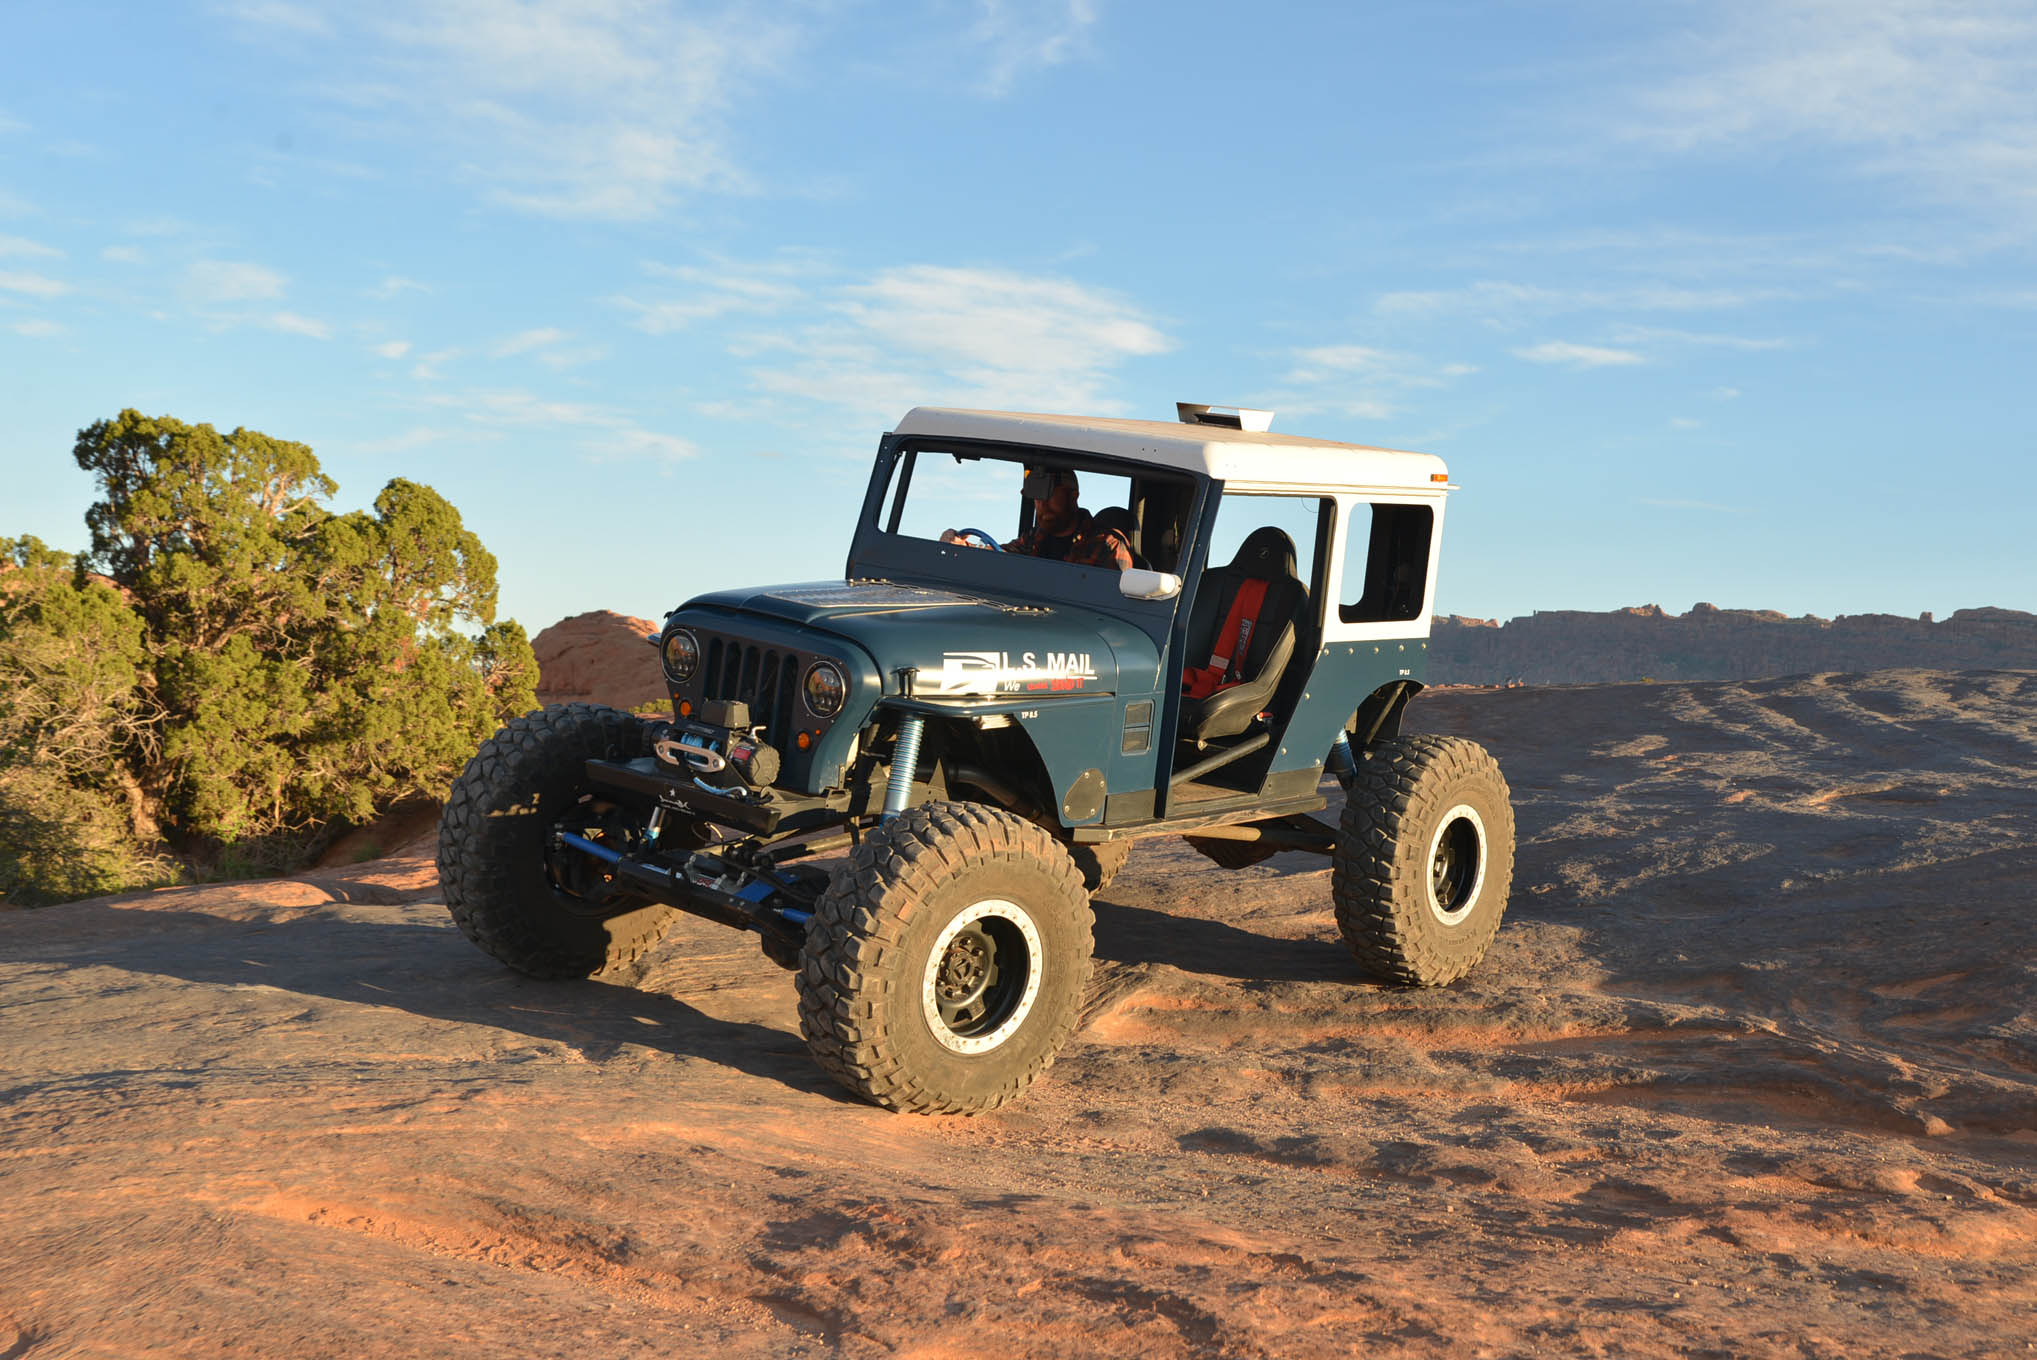 postal jeep ls mail right hand drive gallery 001